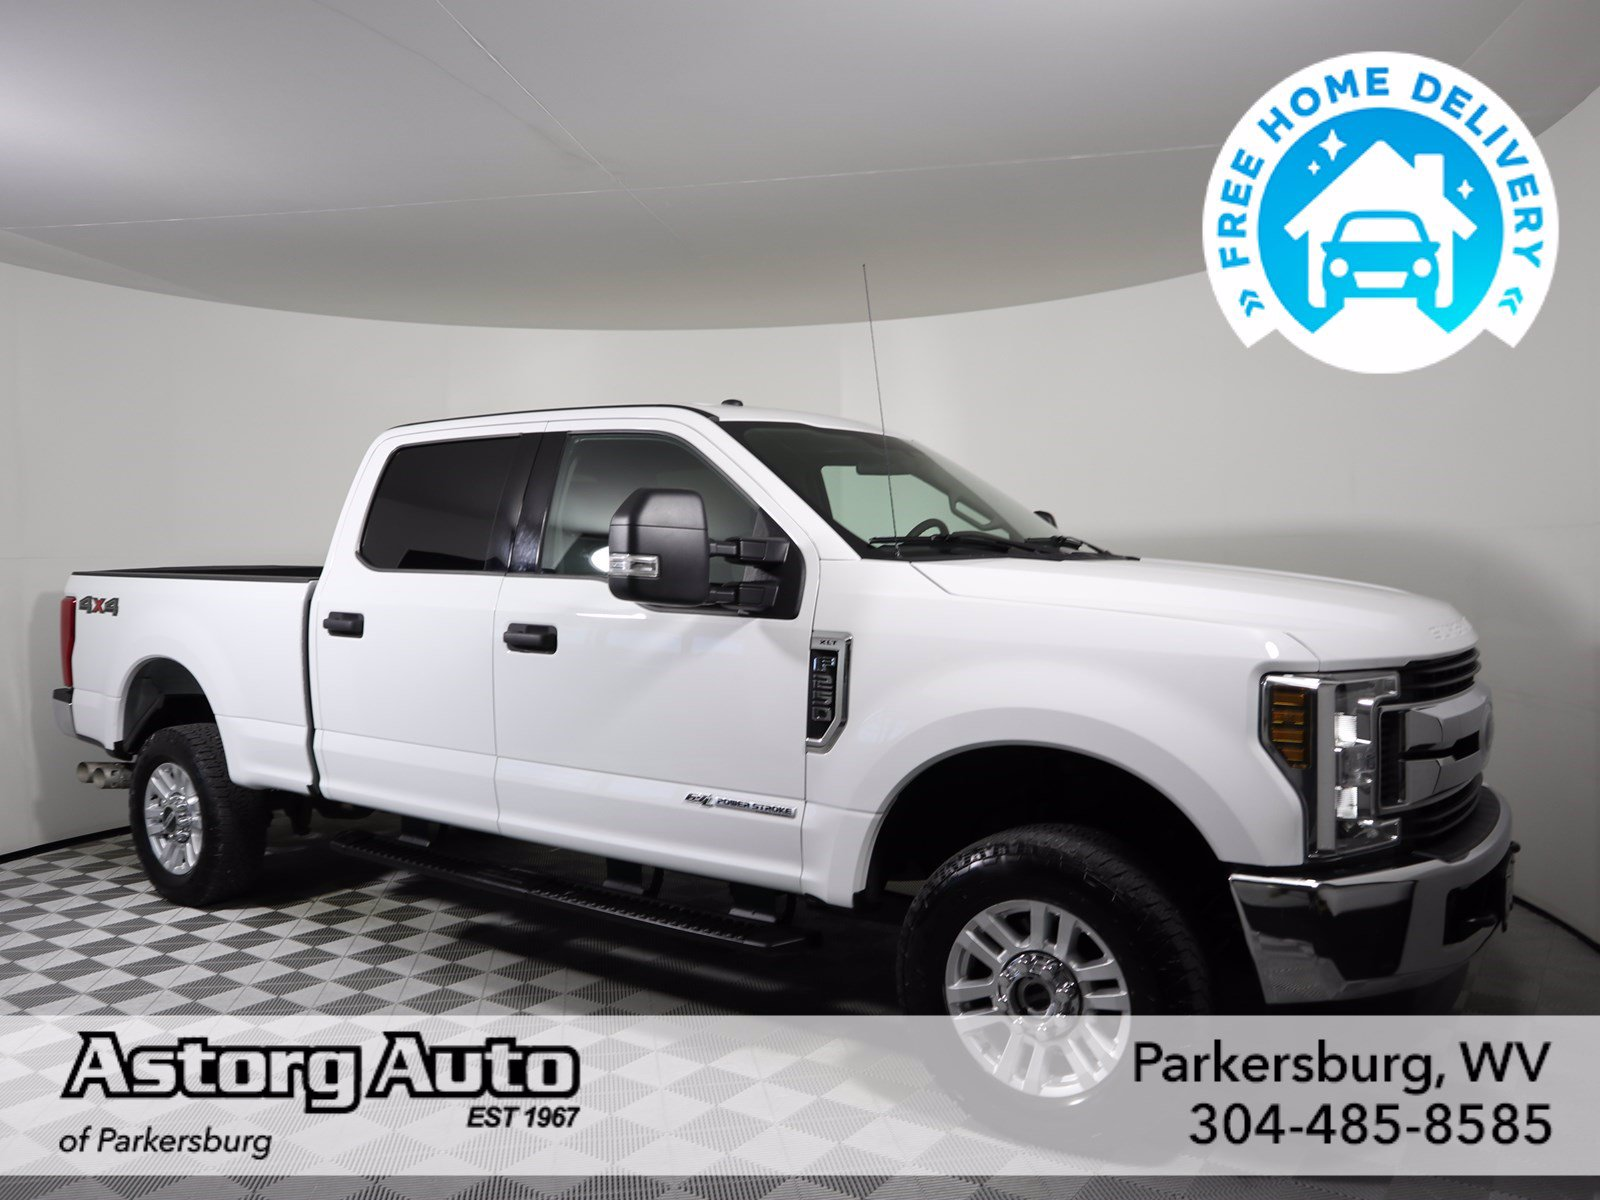 Pre-Owned 2019 Ford Super Duty F-250 SRW